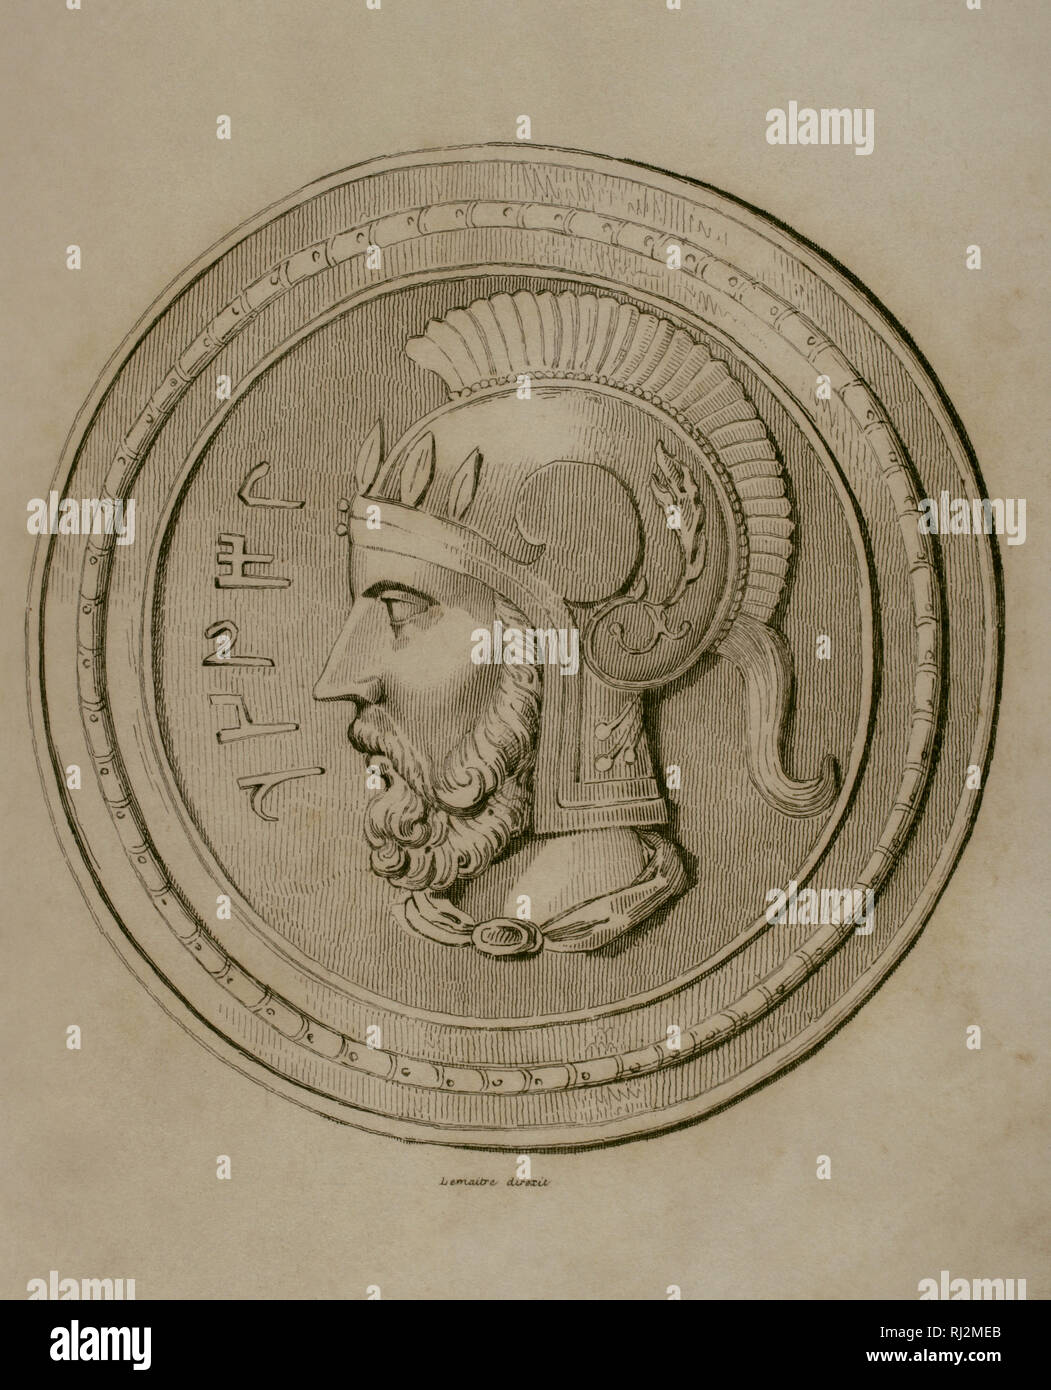 Hannibal Barca (247-183/181 BC). Carthaginian military. Engraving. Lemaitre direxit. Panorama Universal. History of Carthage, 1850. - Stock Image